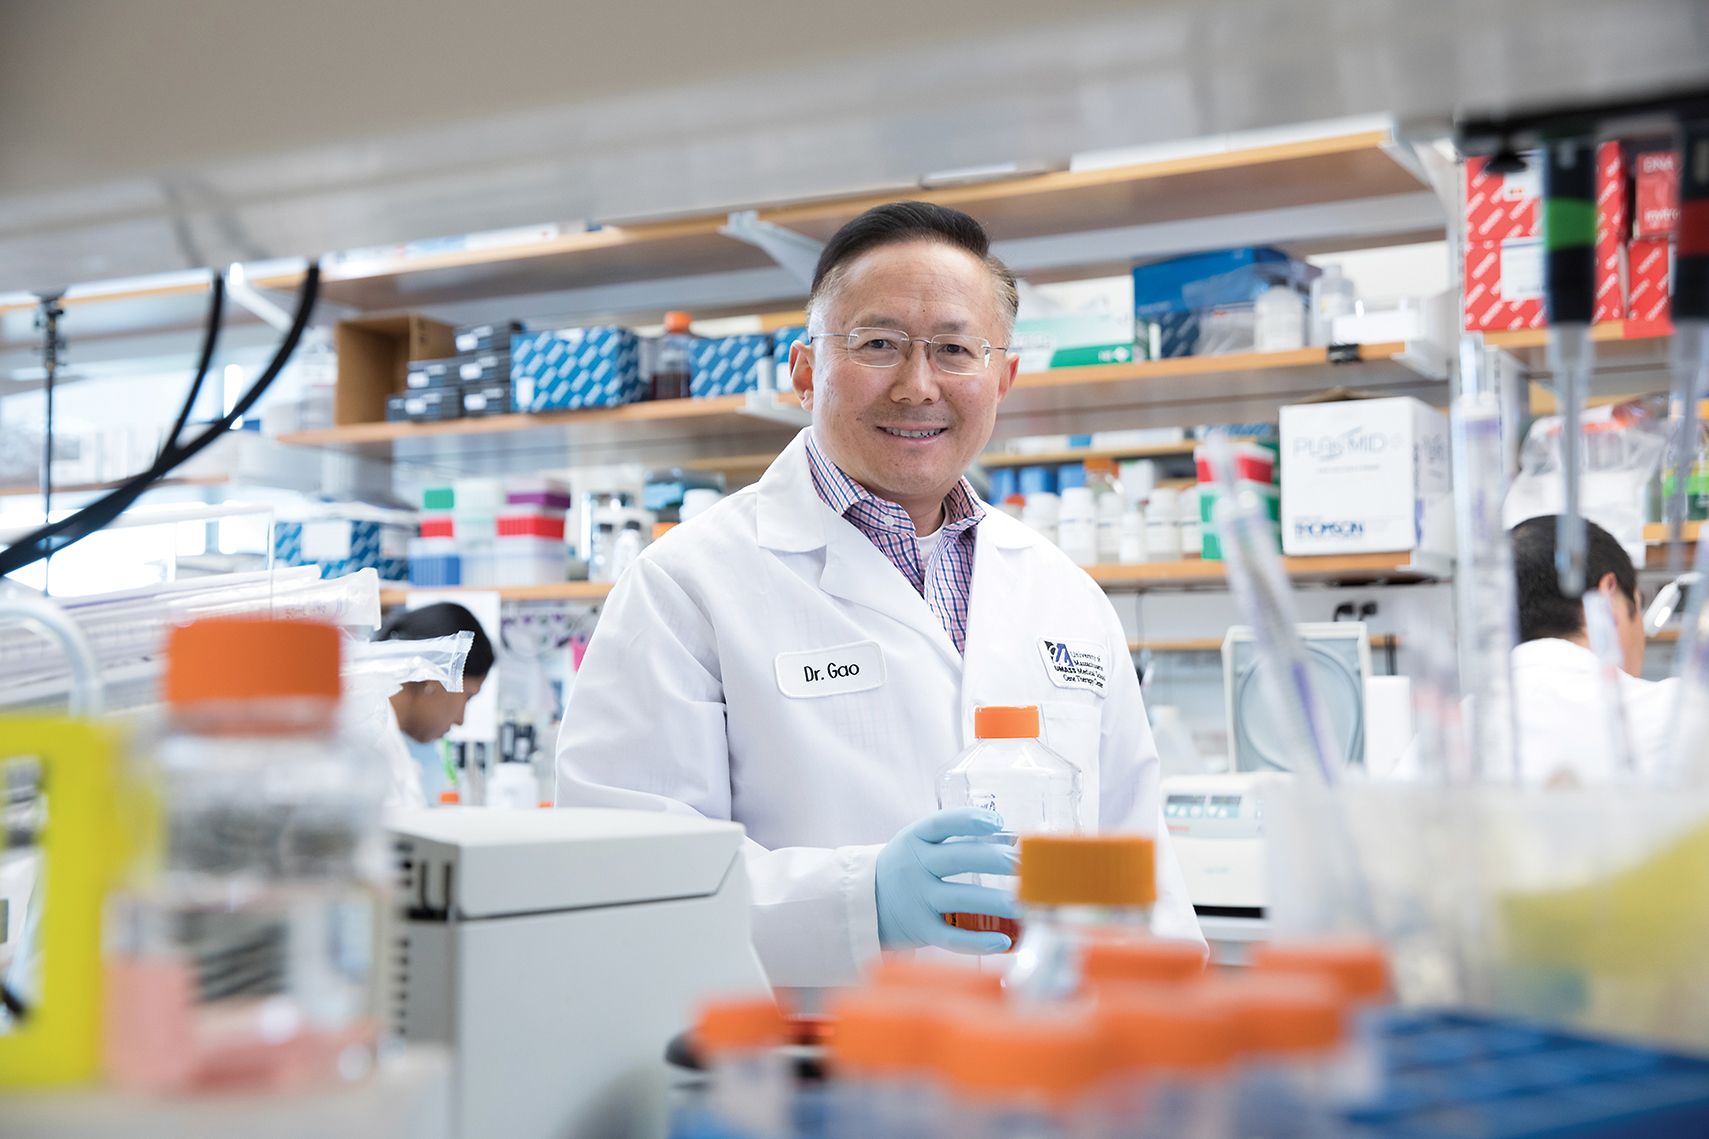 UMass Medical School microbiologist Guangping Gao